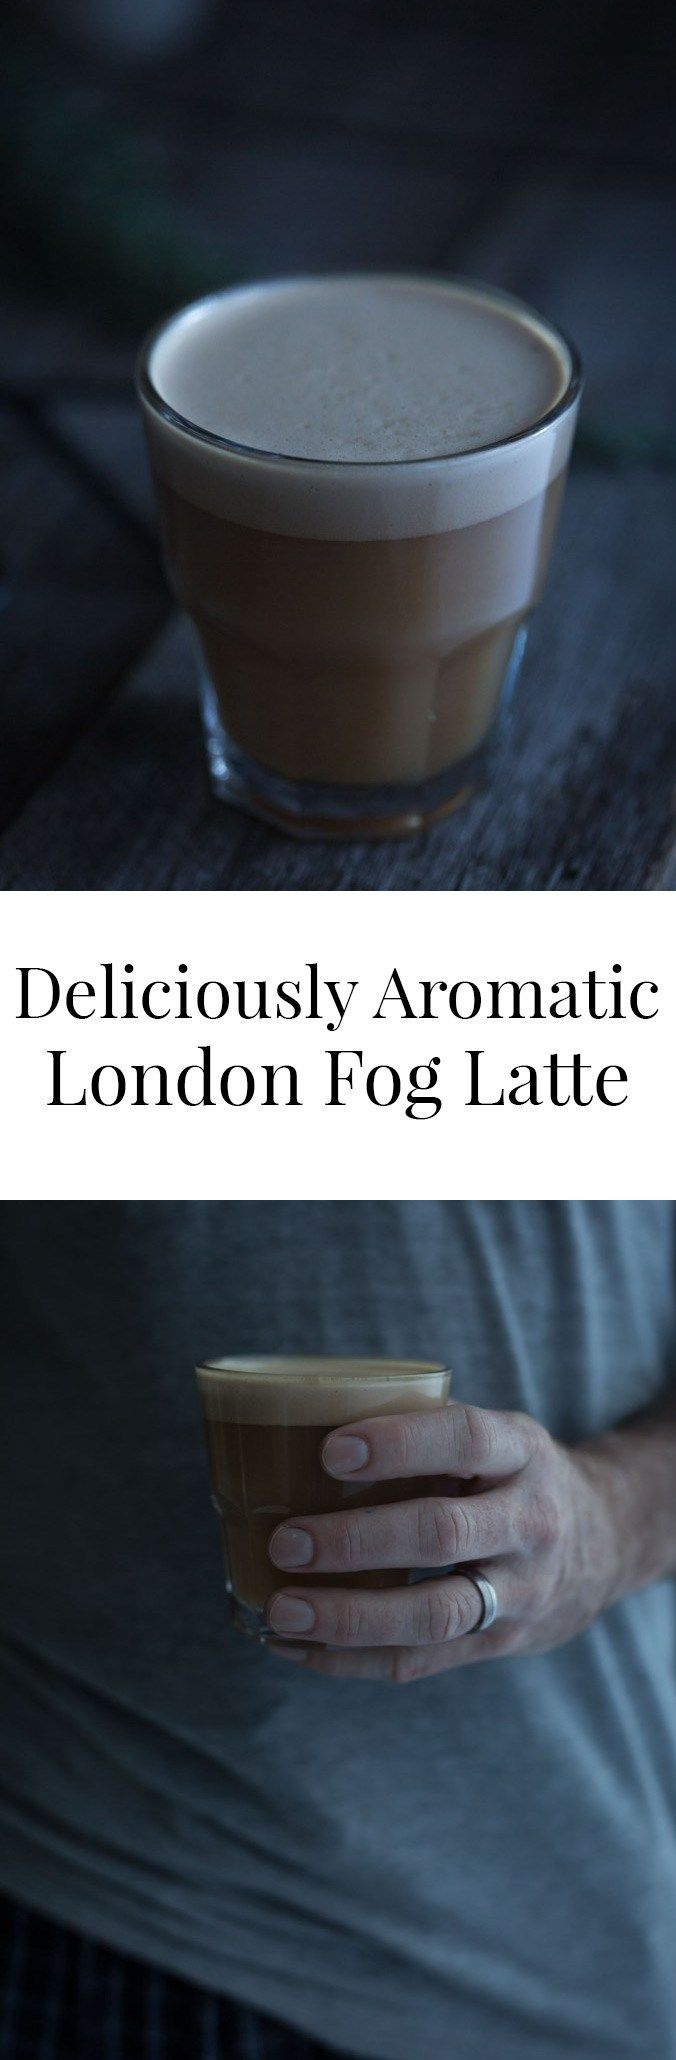 My Deliciously Aromatic London Fog Latte includes a waft of lavender and a tiny pinch of salt to enhance the intoxicating Earl Grey and vanilla flavours.